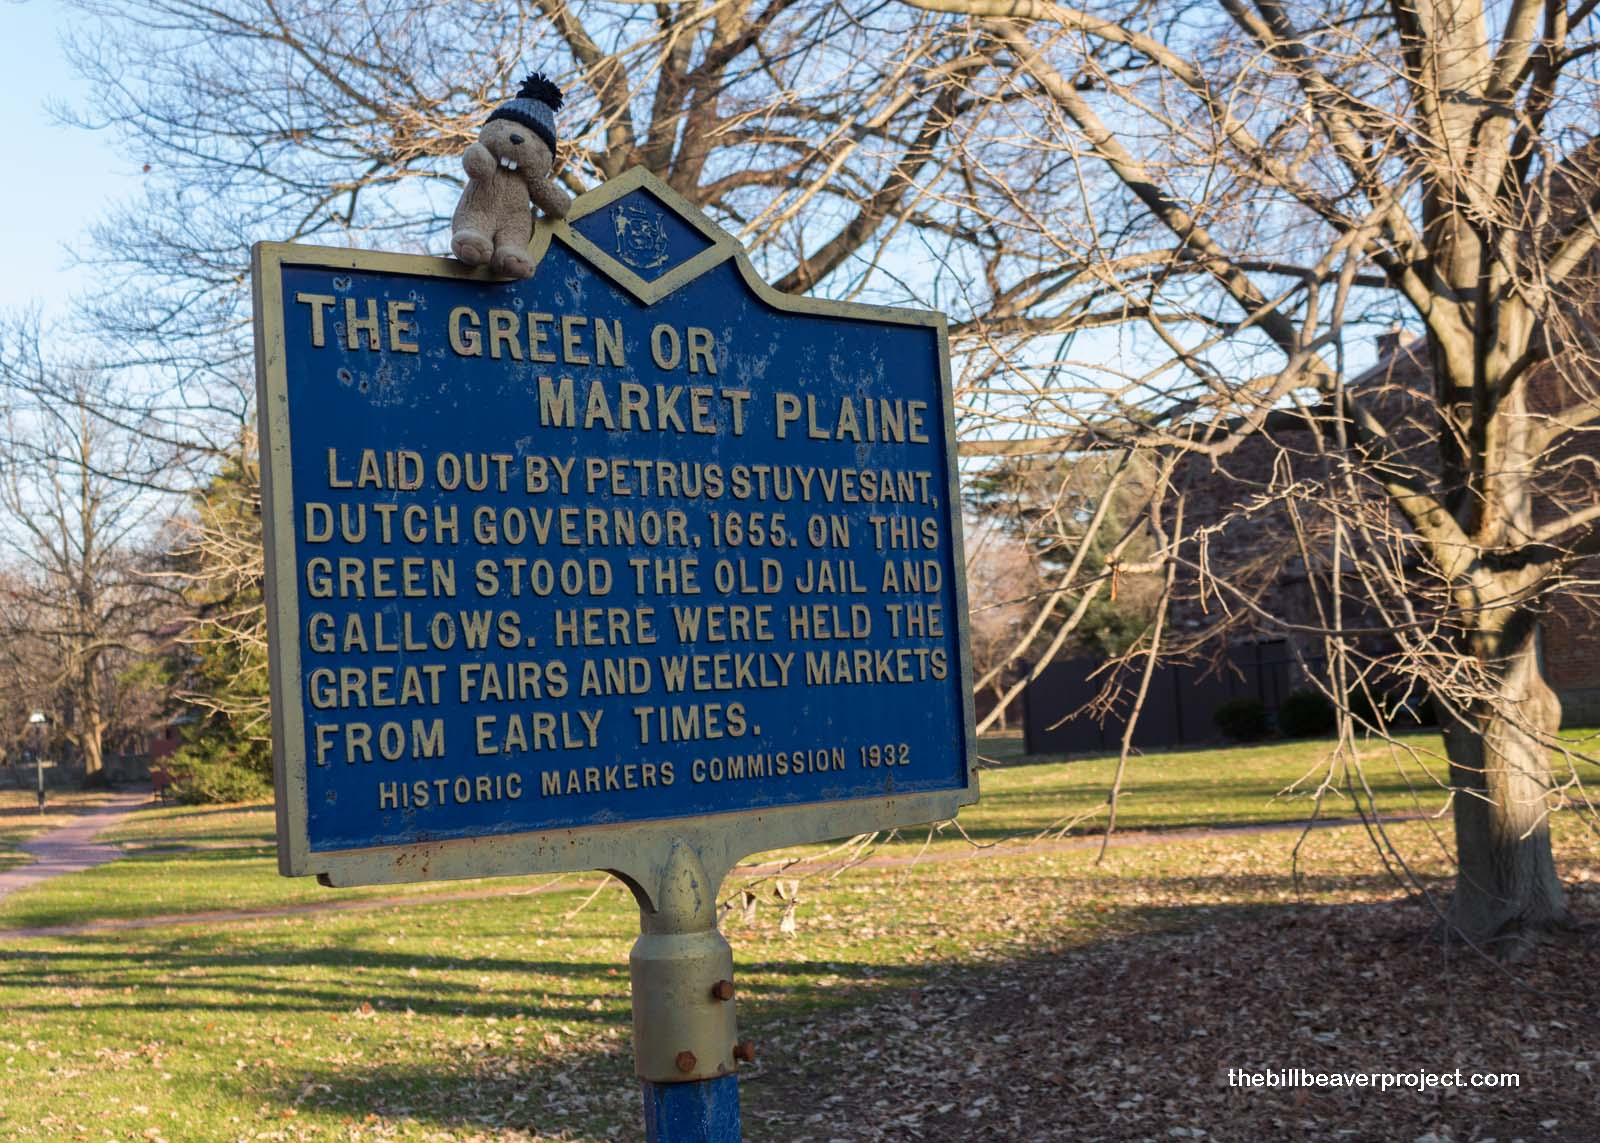 The Green or Market Plaine